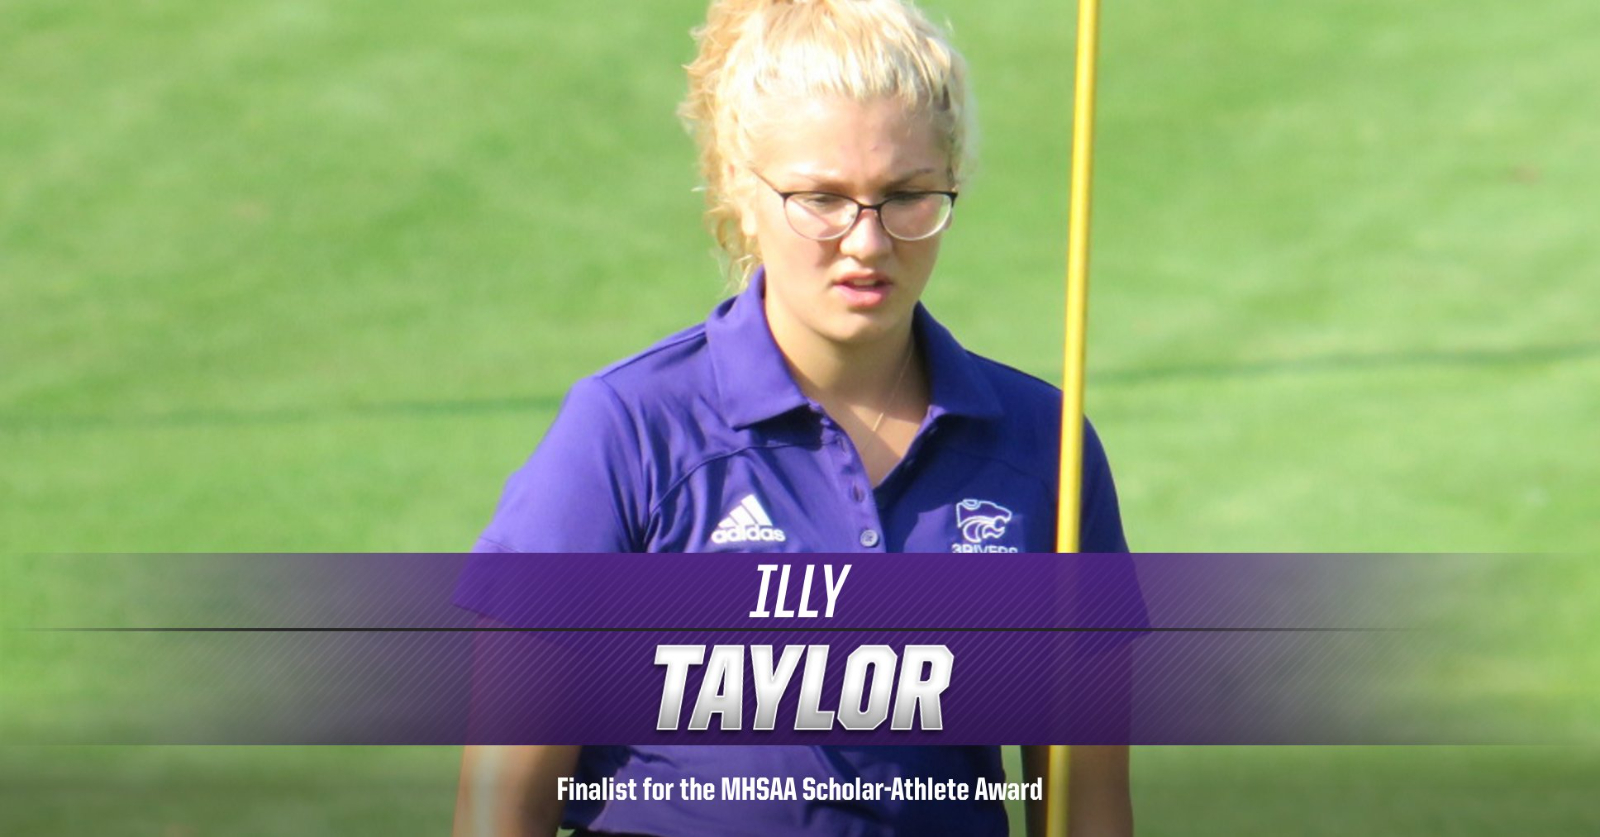 Taylor Named Finalists for MHSAA Scholar-Athlete Award